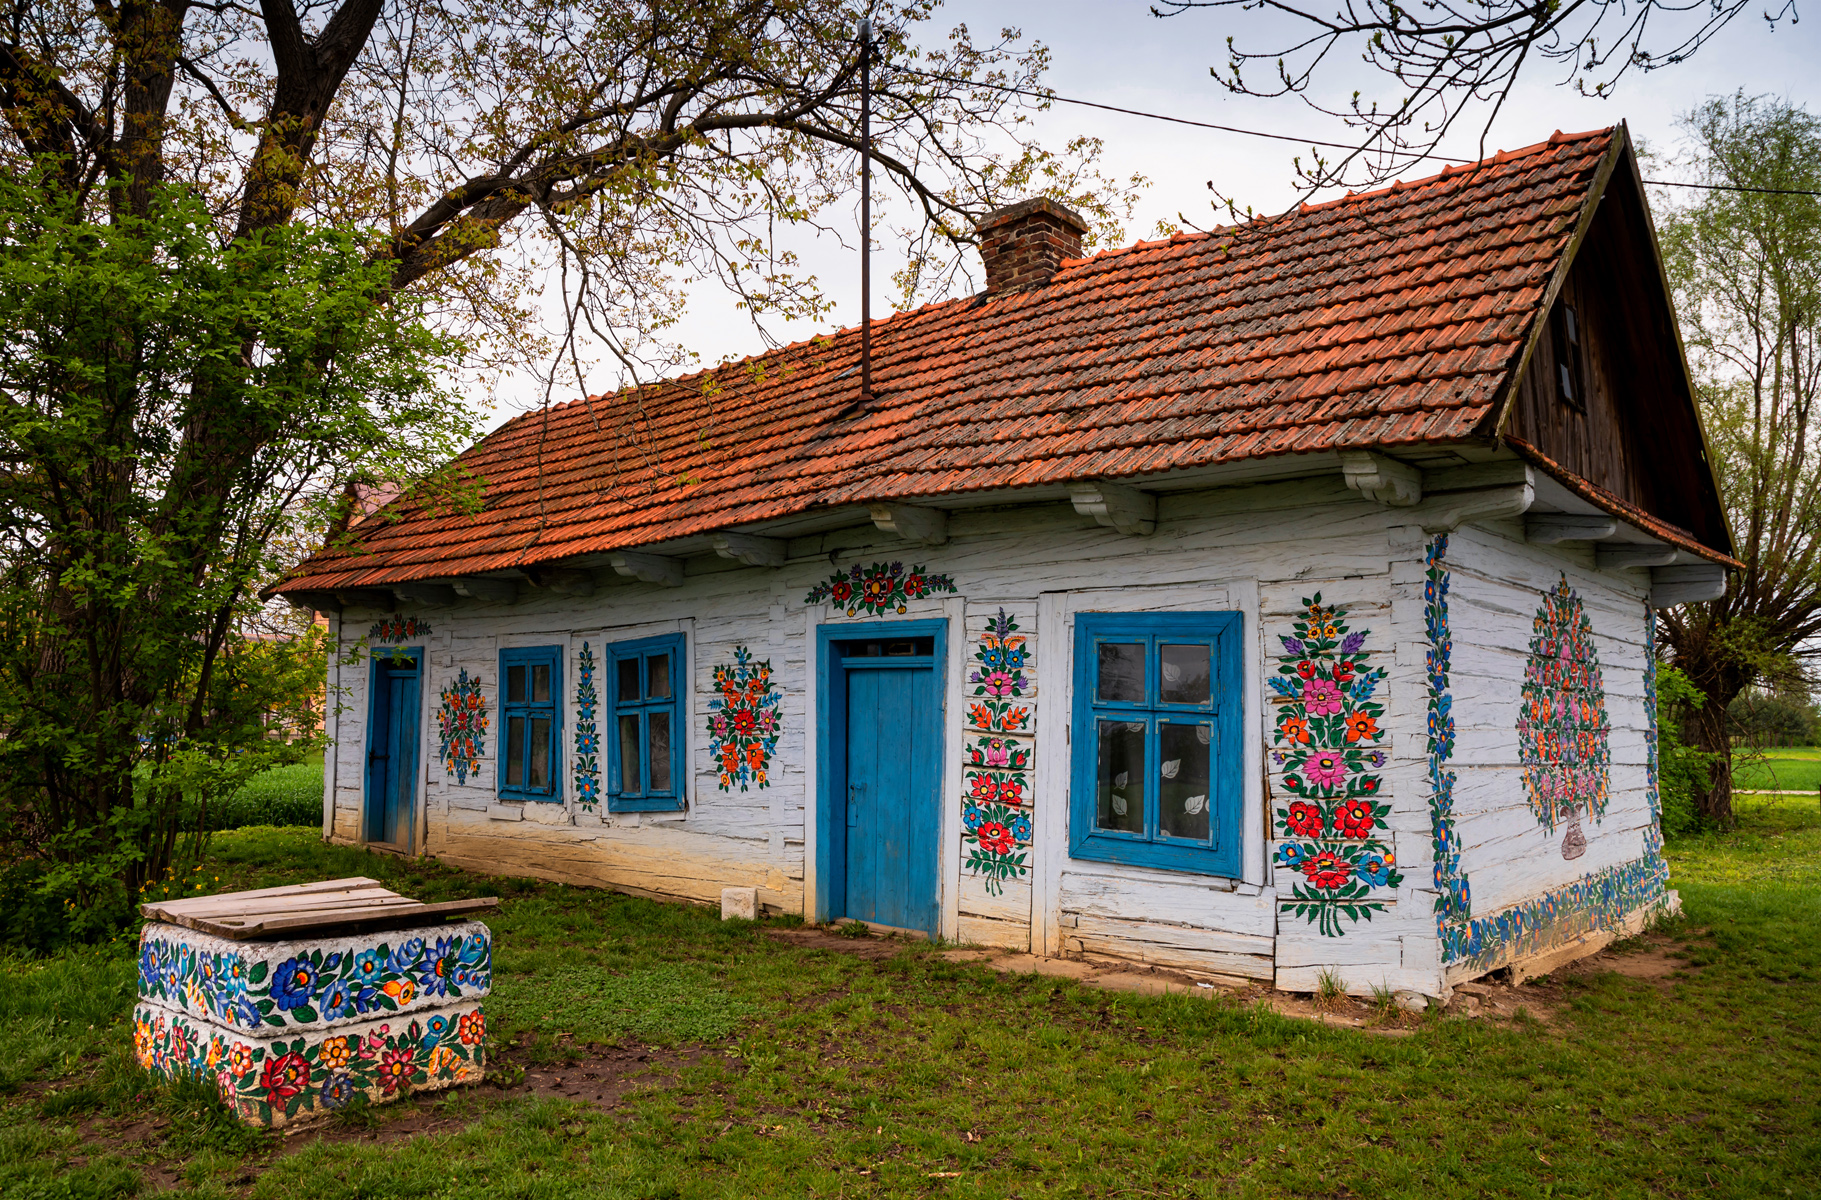 Zalipie Painted Houses, Poland